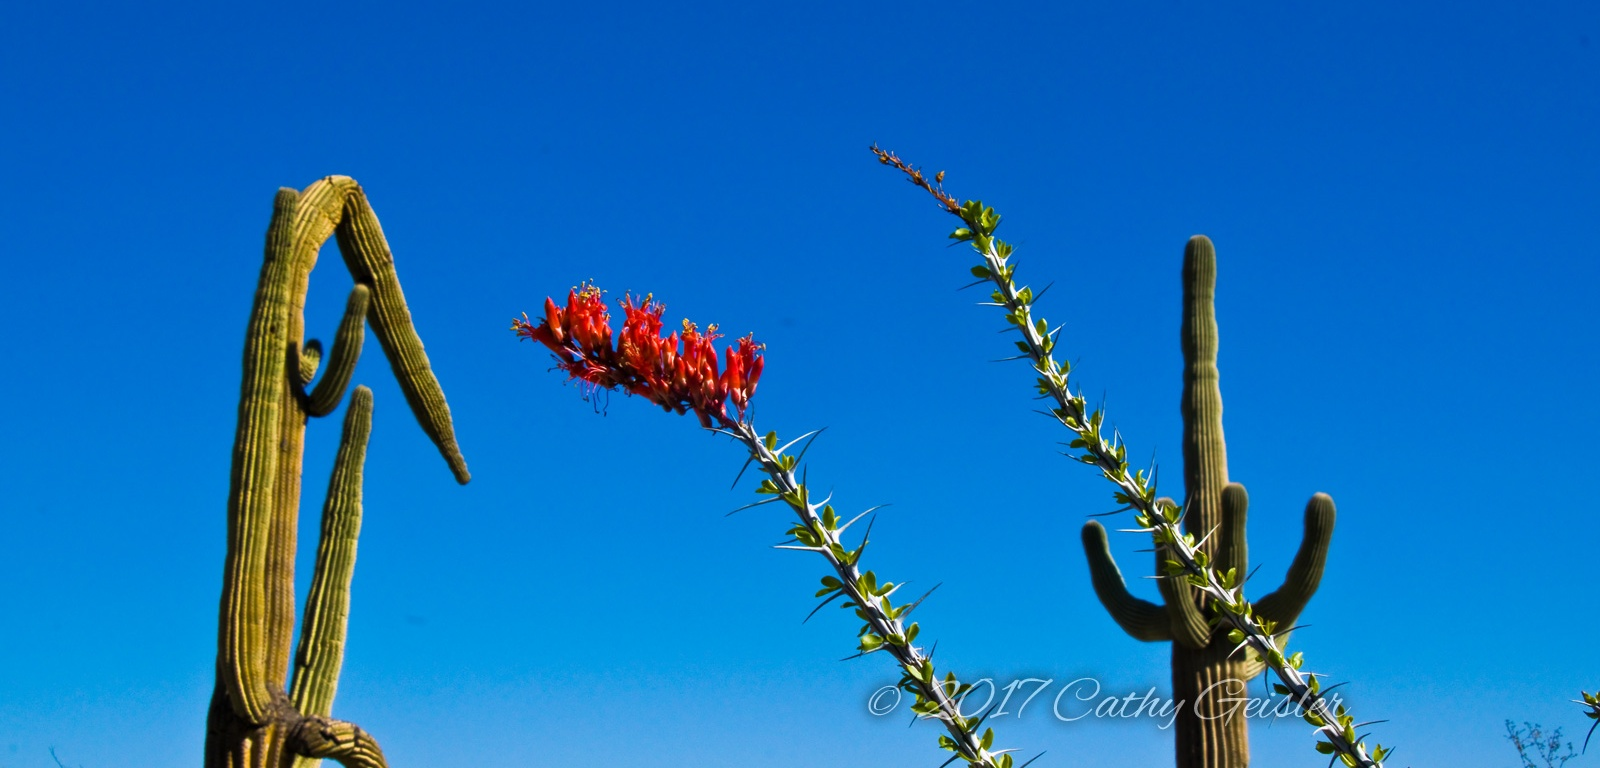 Occotillo blossoms among the saguaros